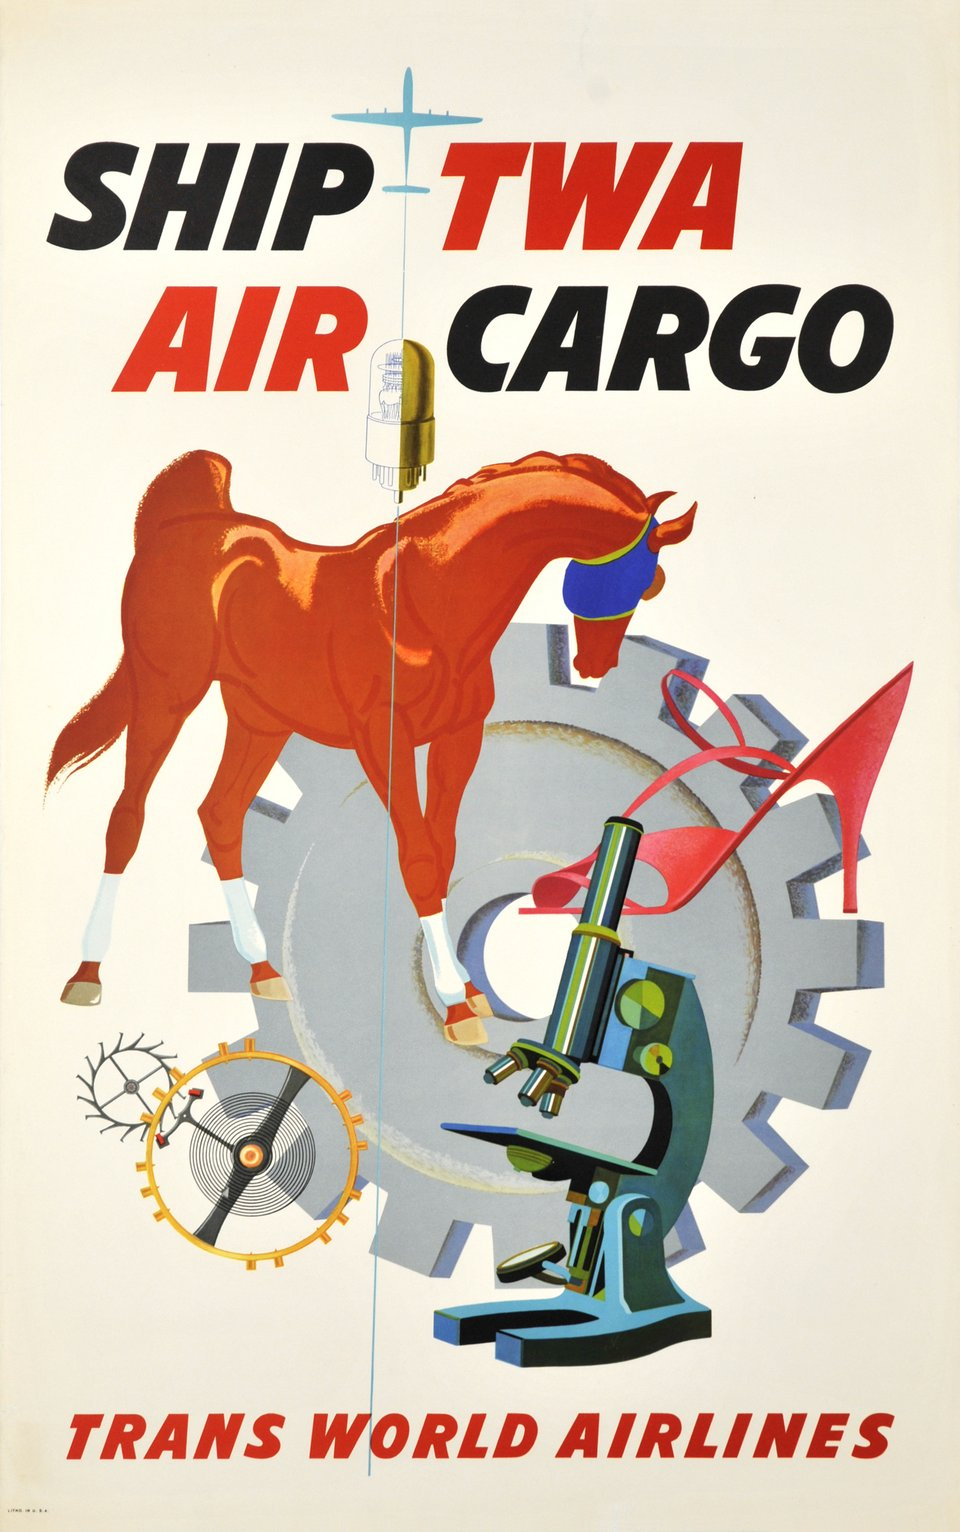 TWA, Ship TWA Air Cargo, Trans world Airlines – Vintage poster –  ANONYME – 1950